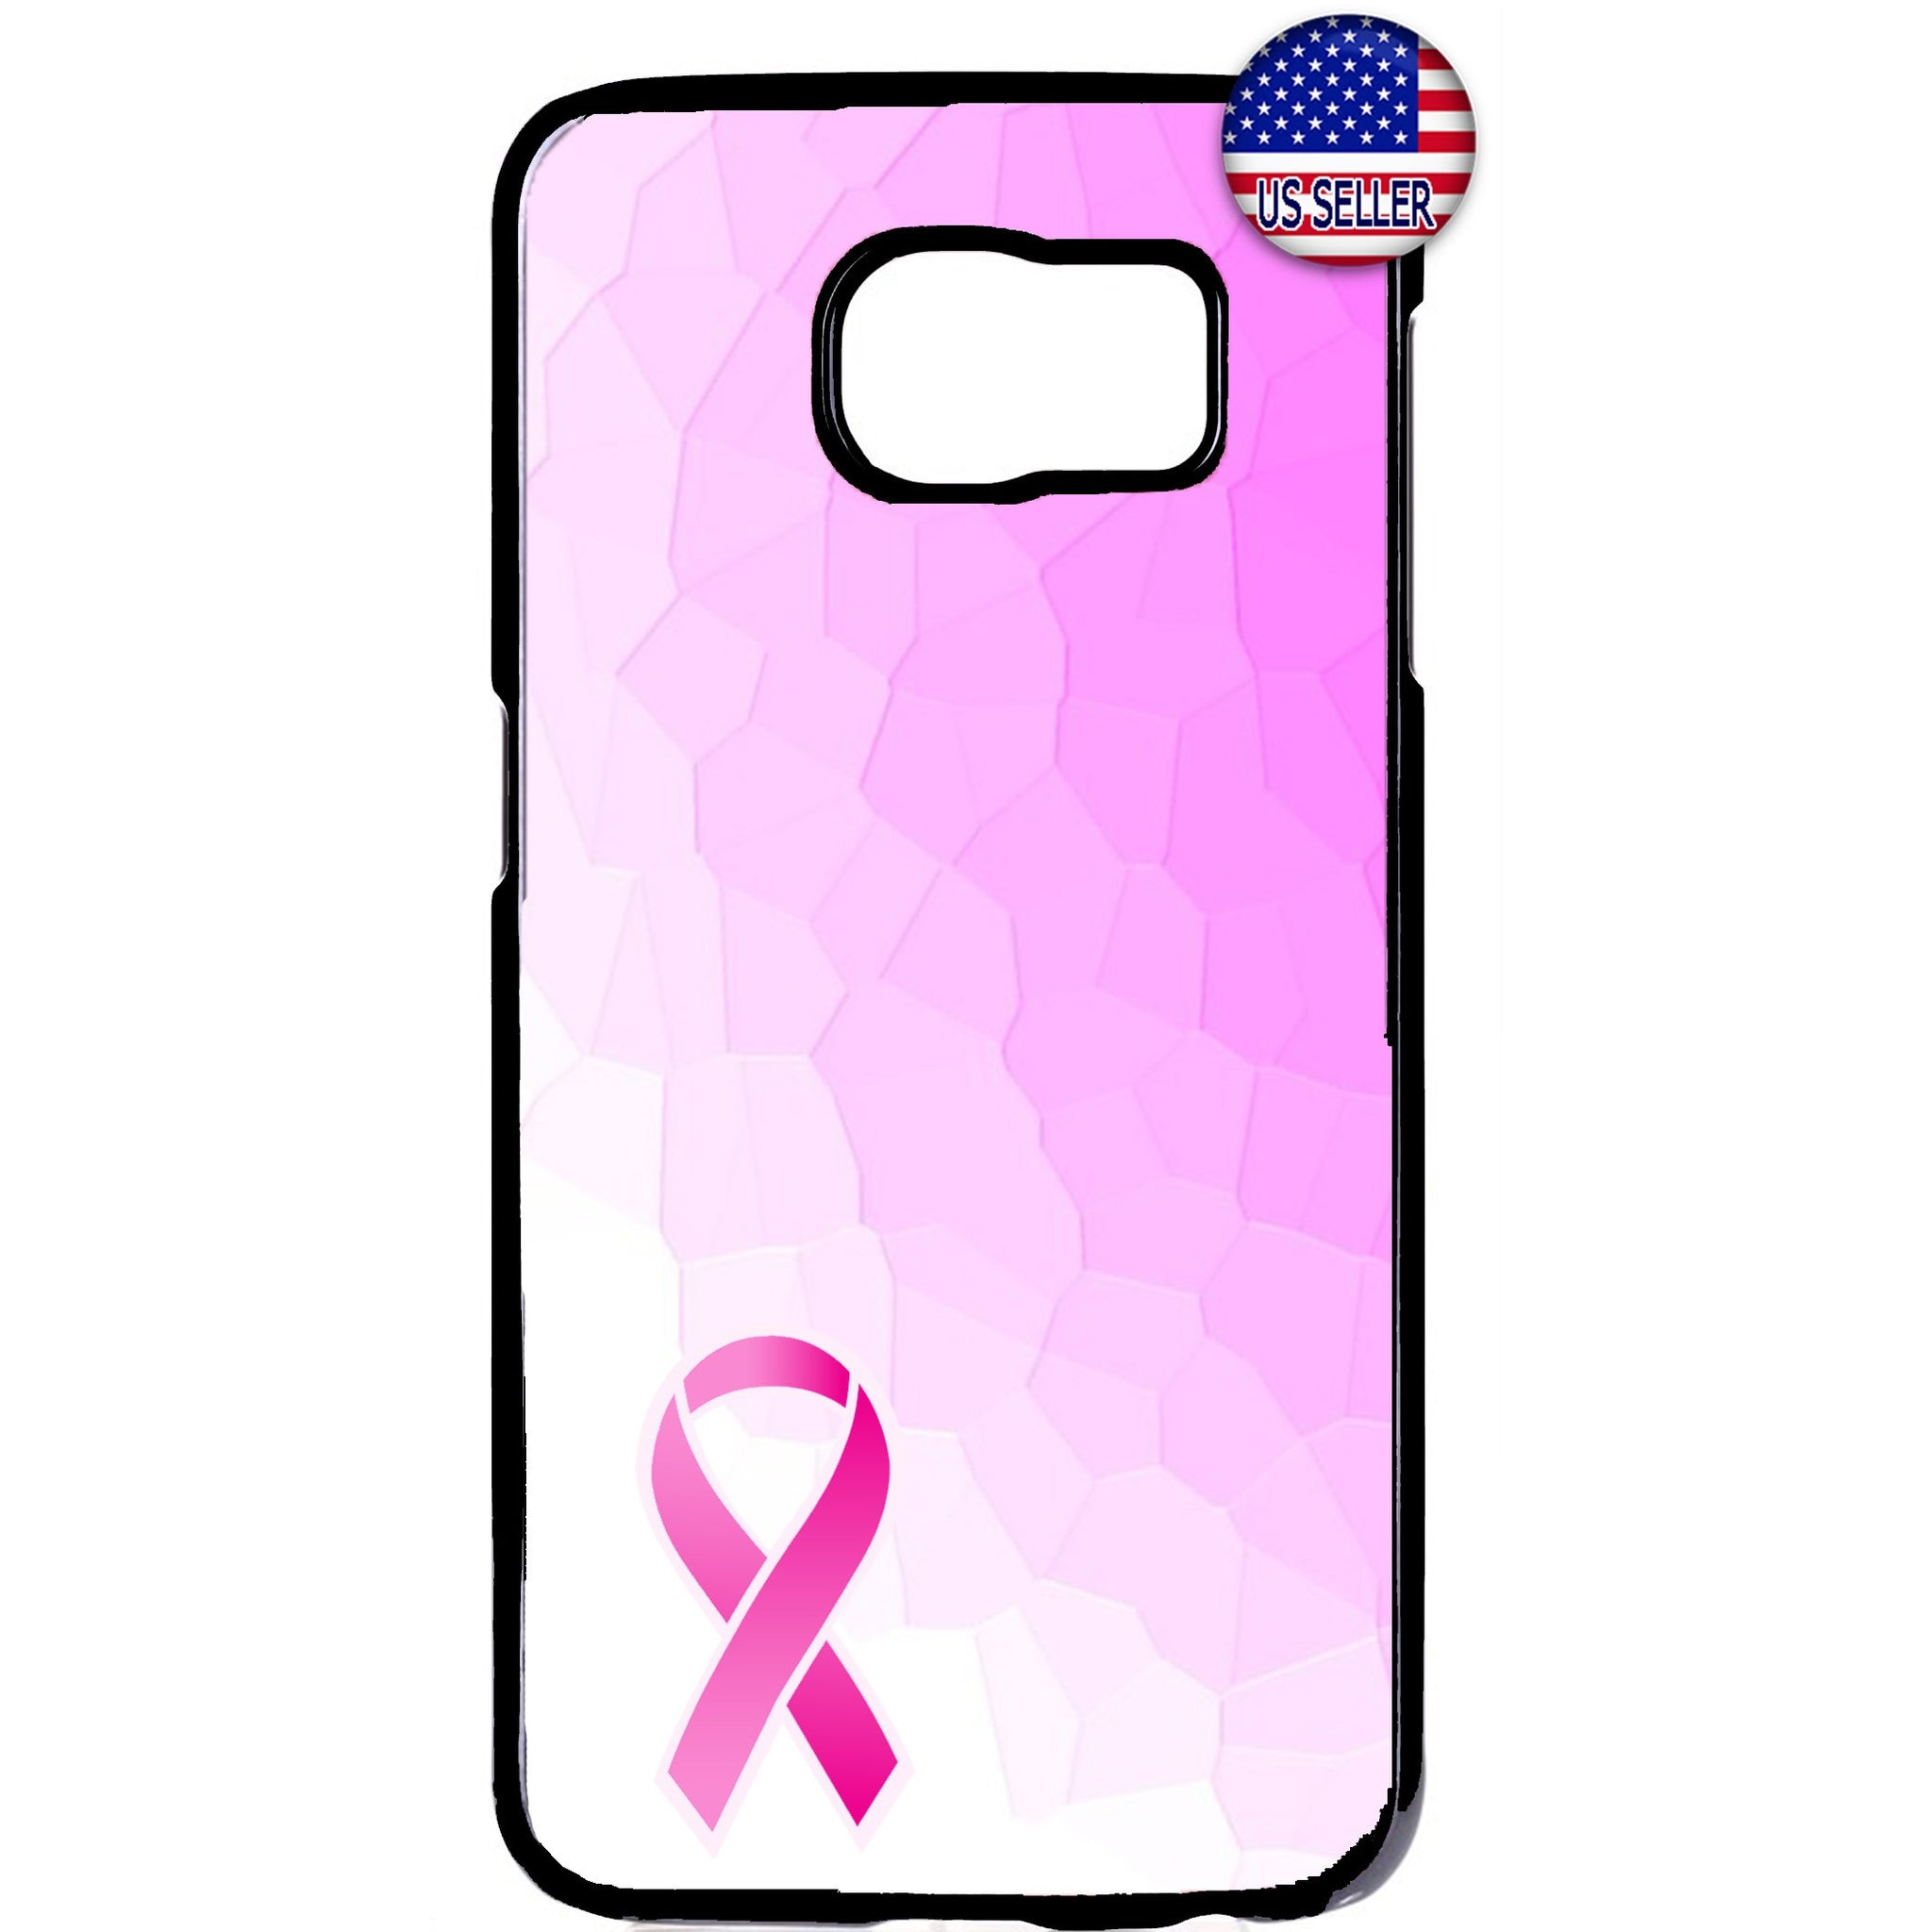 Breast Cancer Awareness Pink Ribbon Rubber Case Cover For Samsung Galaxy